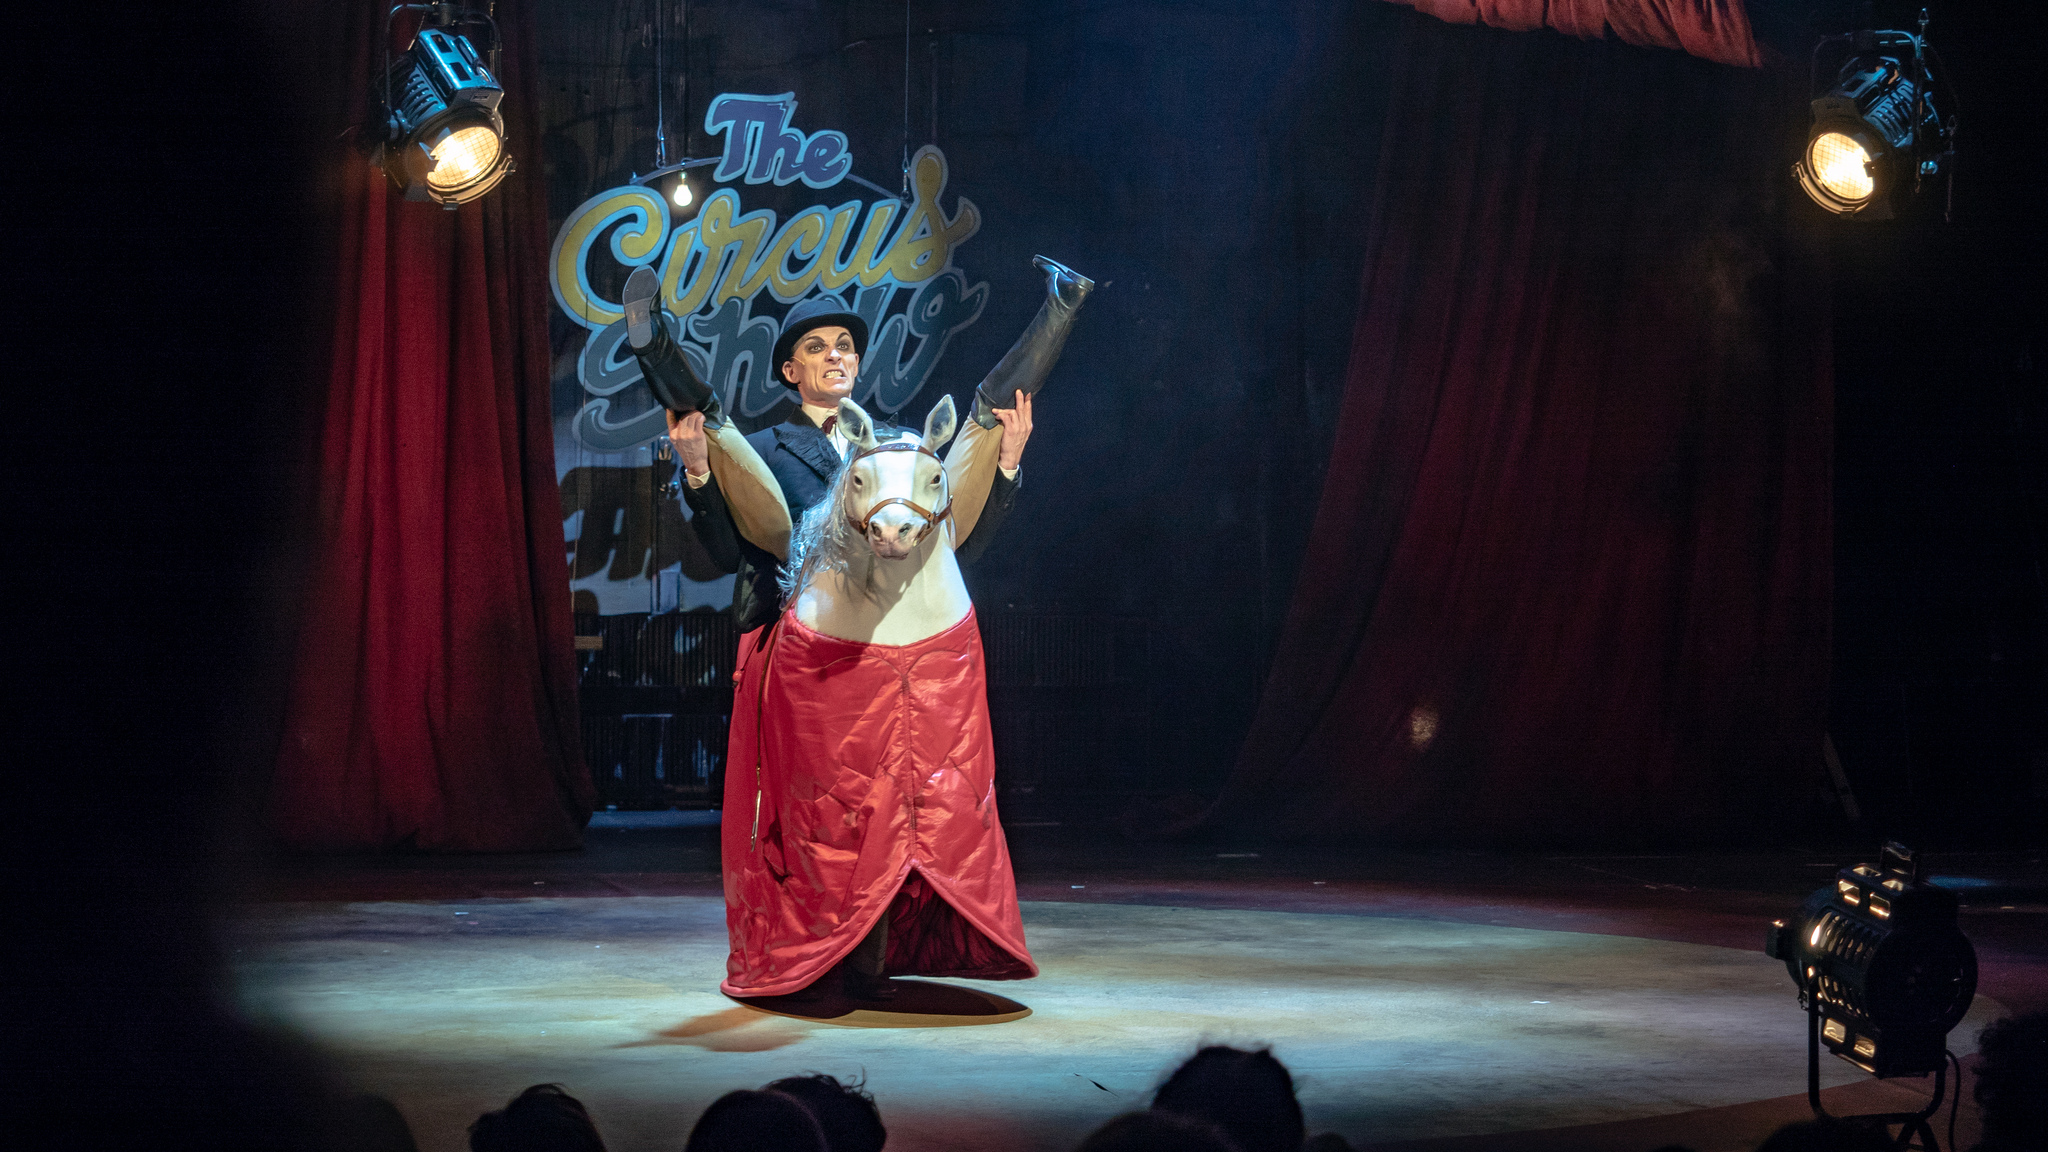 Lion - The weird and magical Abracadabra Circus Show Turun Kaupunginteatterissa